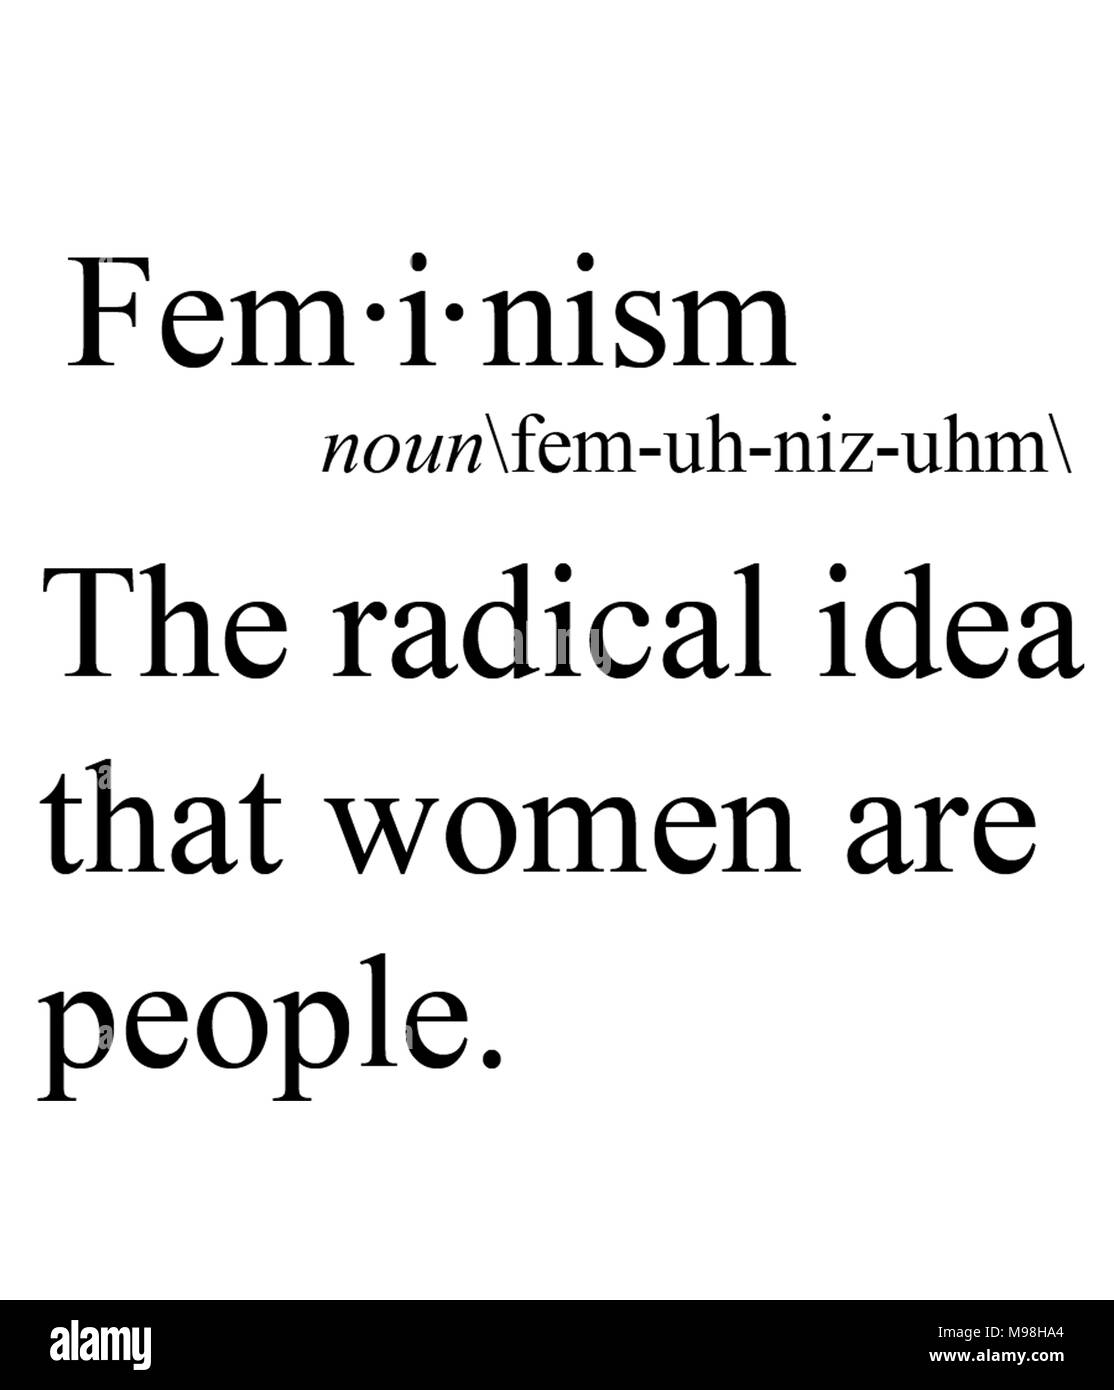 Feminism the radical idea that women are people. - Stock Image